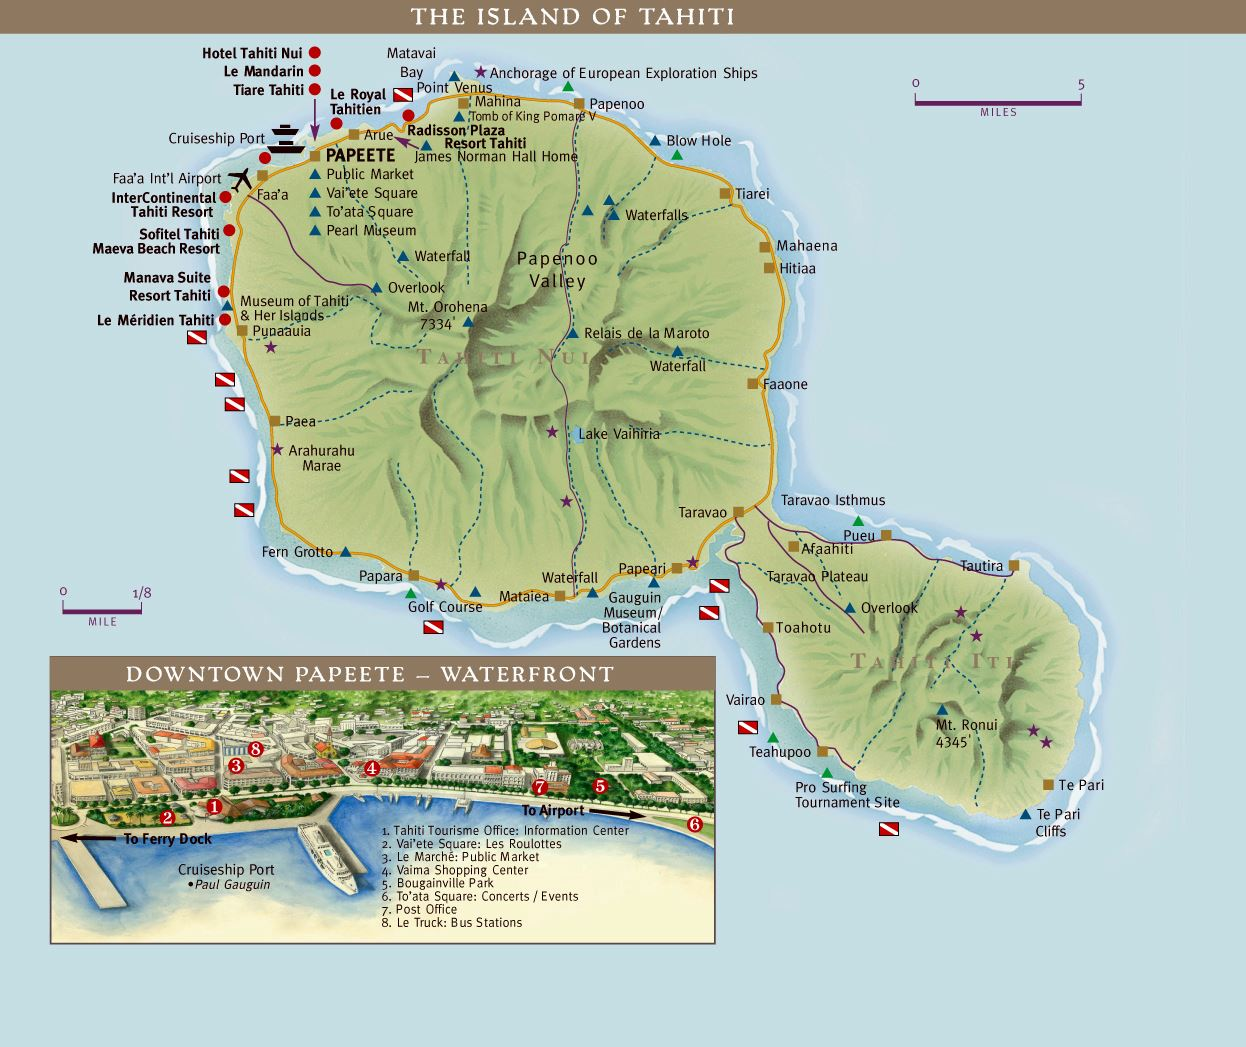 large tahiti island maps for free download and print  high  - large map of tahiti island